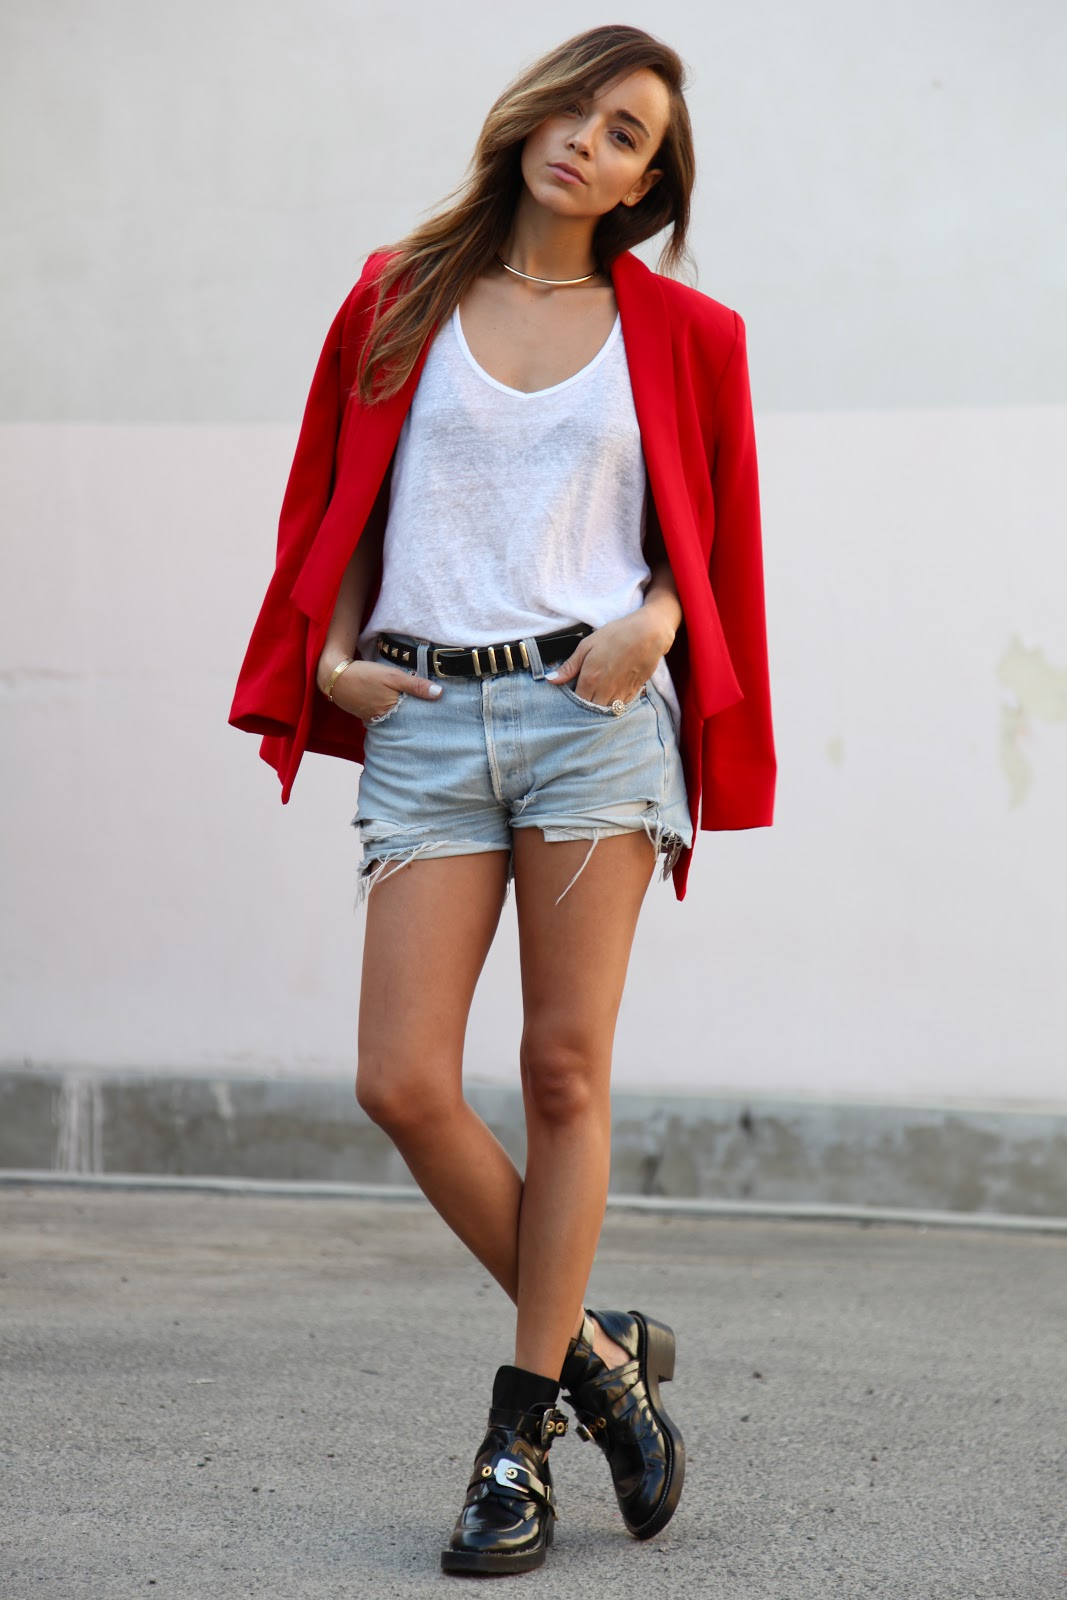 Ashley Madekwe is wearing a vintage Levi's cut offs, T-shirt from Anine Bing, jacket from Bec & Bridge and boots from Balenciaga